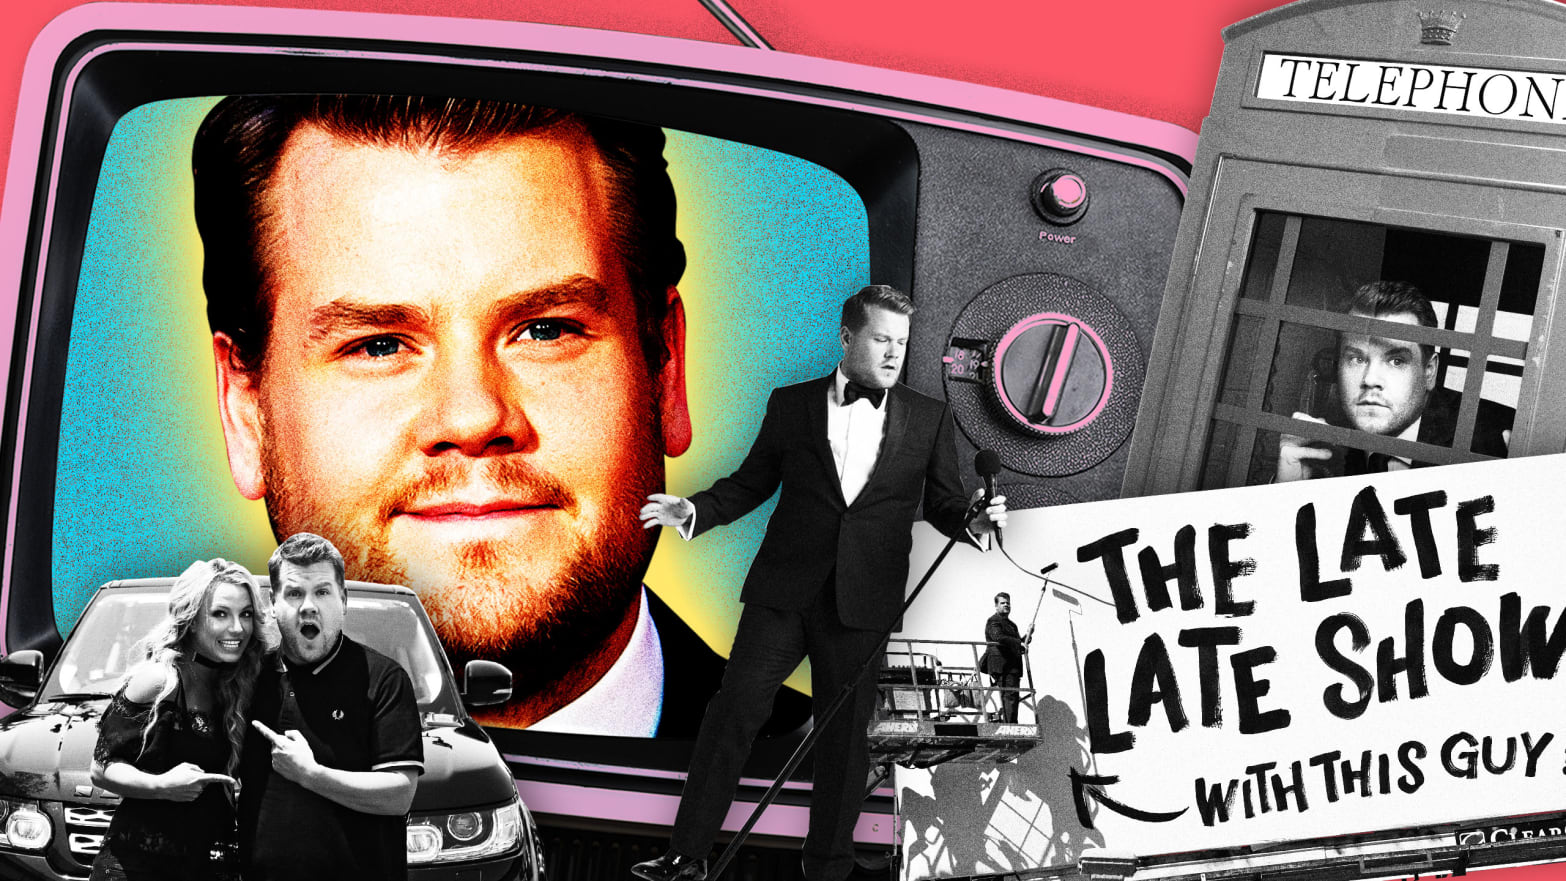 James Corden has wildly exceeded his own expectations.